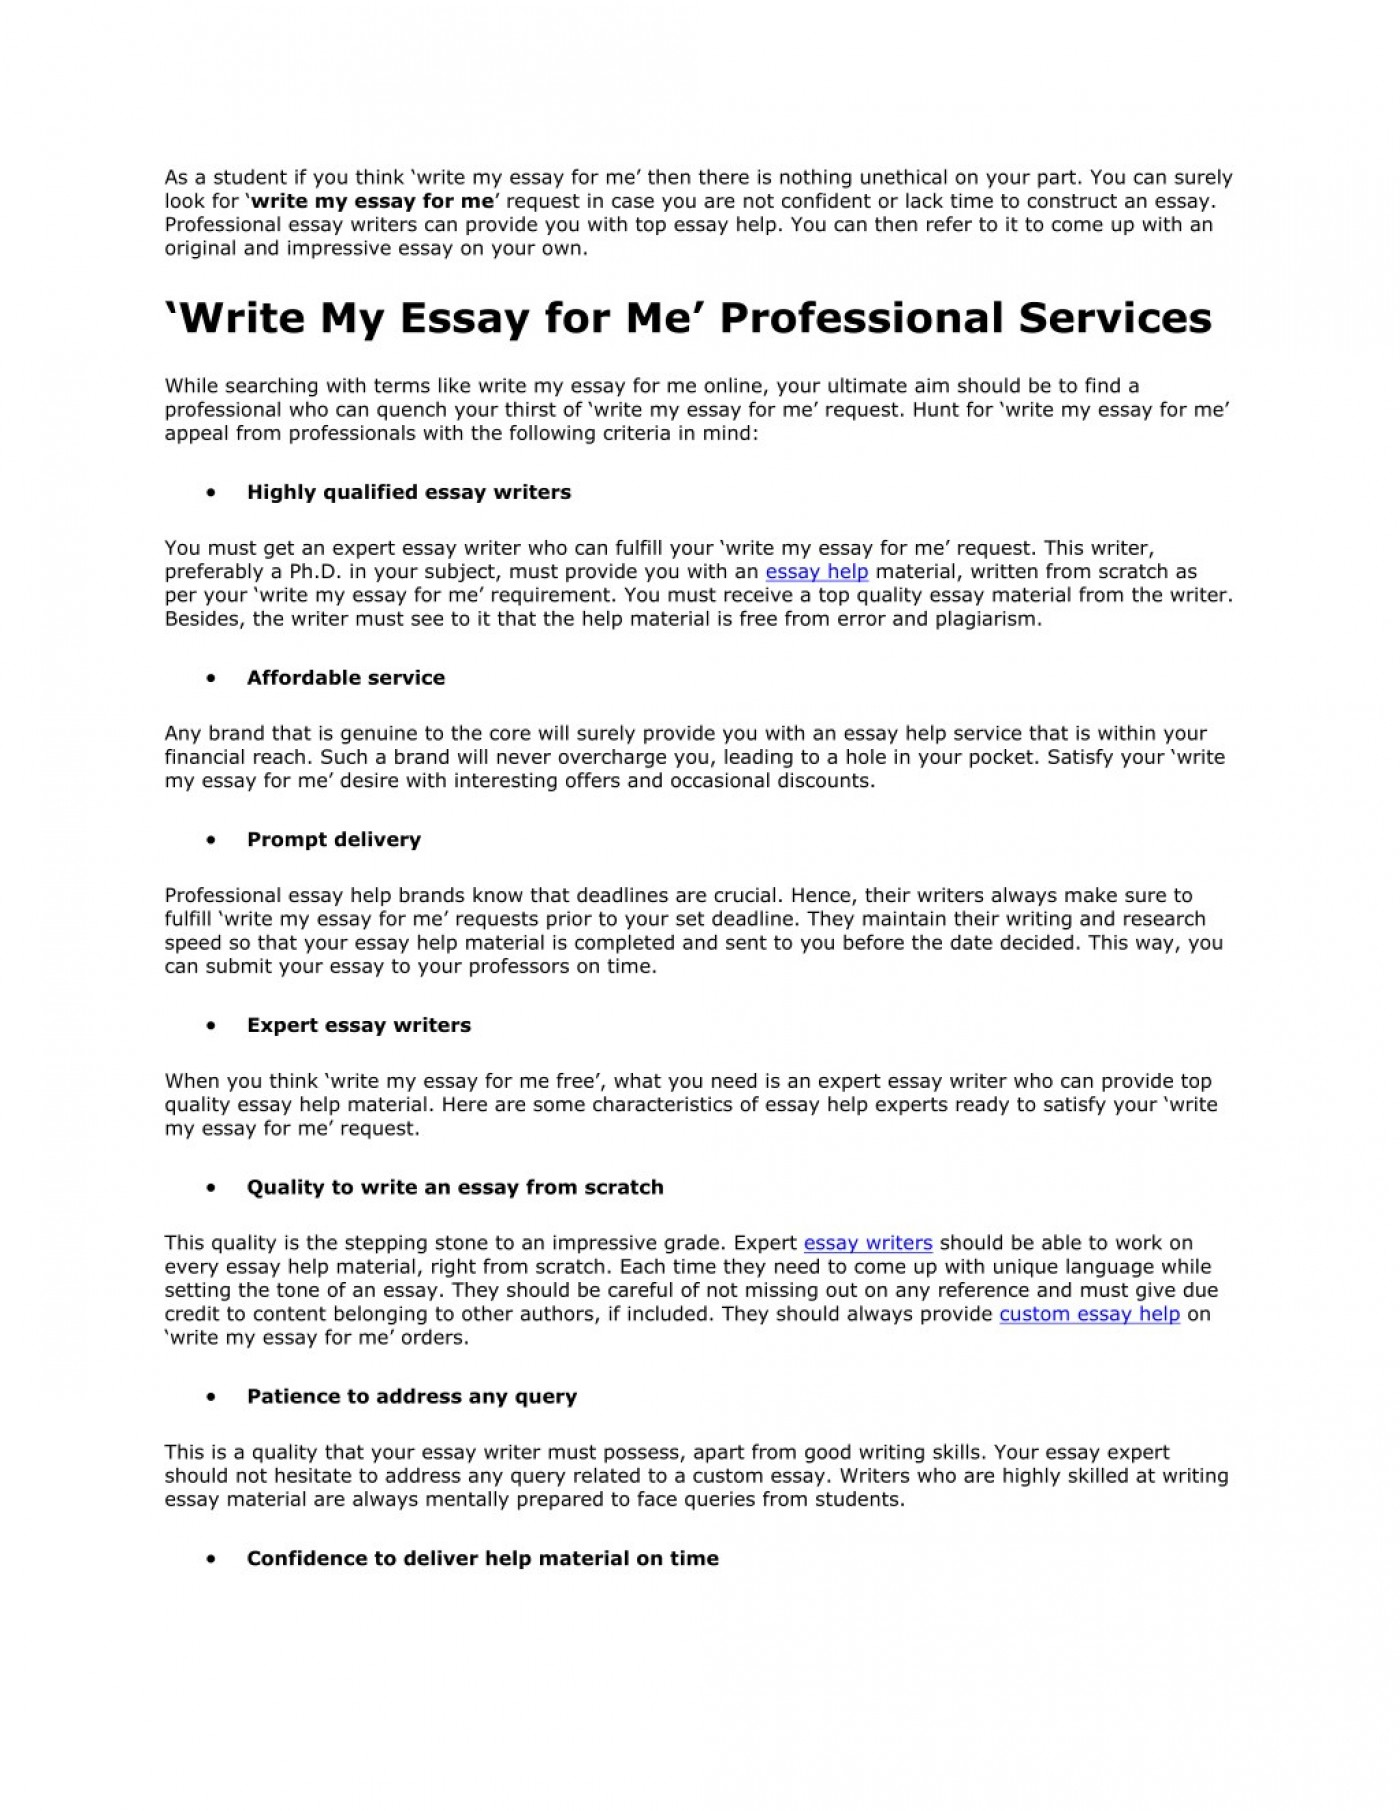 006 Essay Example Write For Me As Student If You Think My Amazing College Cheap Uk Discount Code 1400